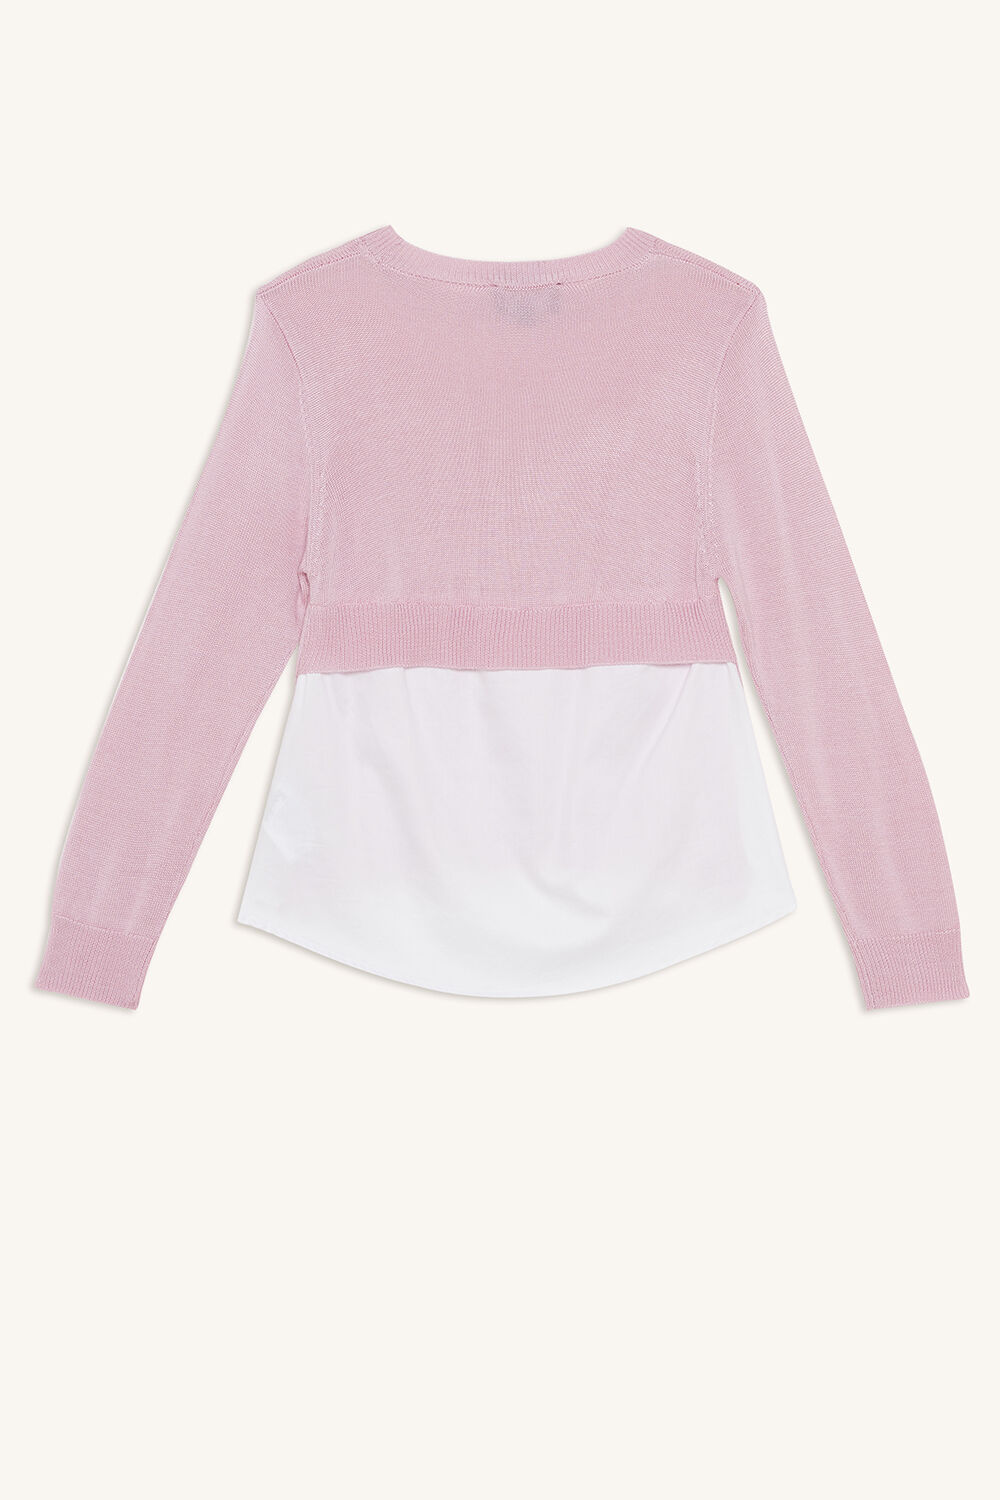 ELORA 2FER KNIT TOP in colour LILAC CHIFFON